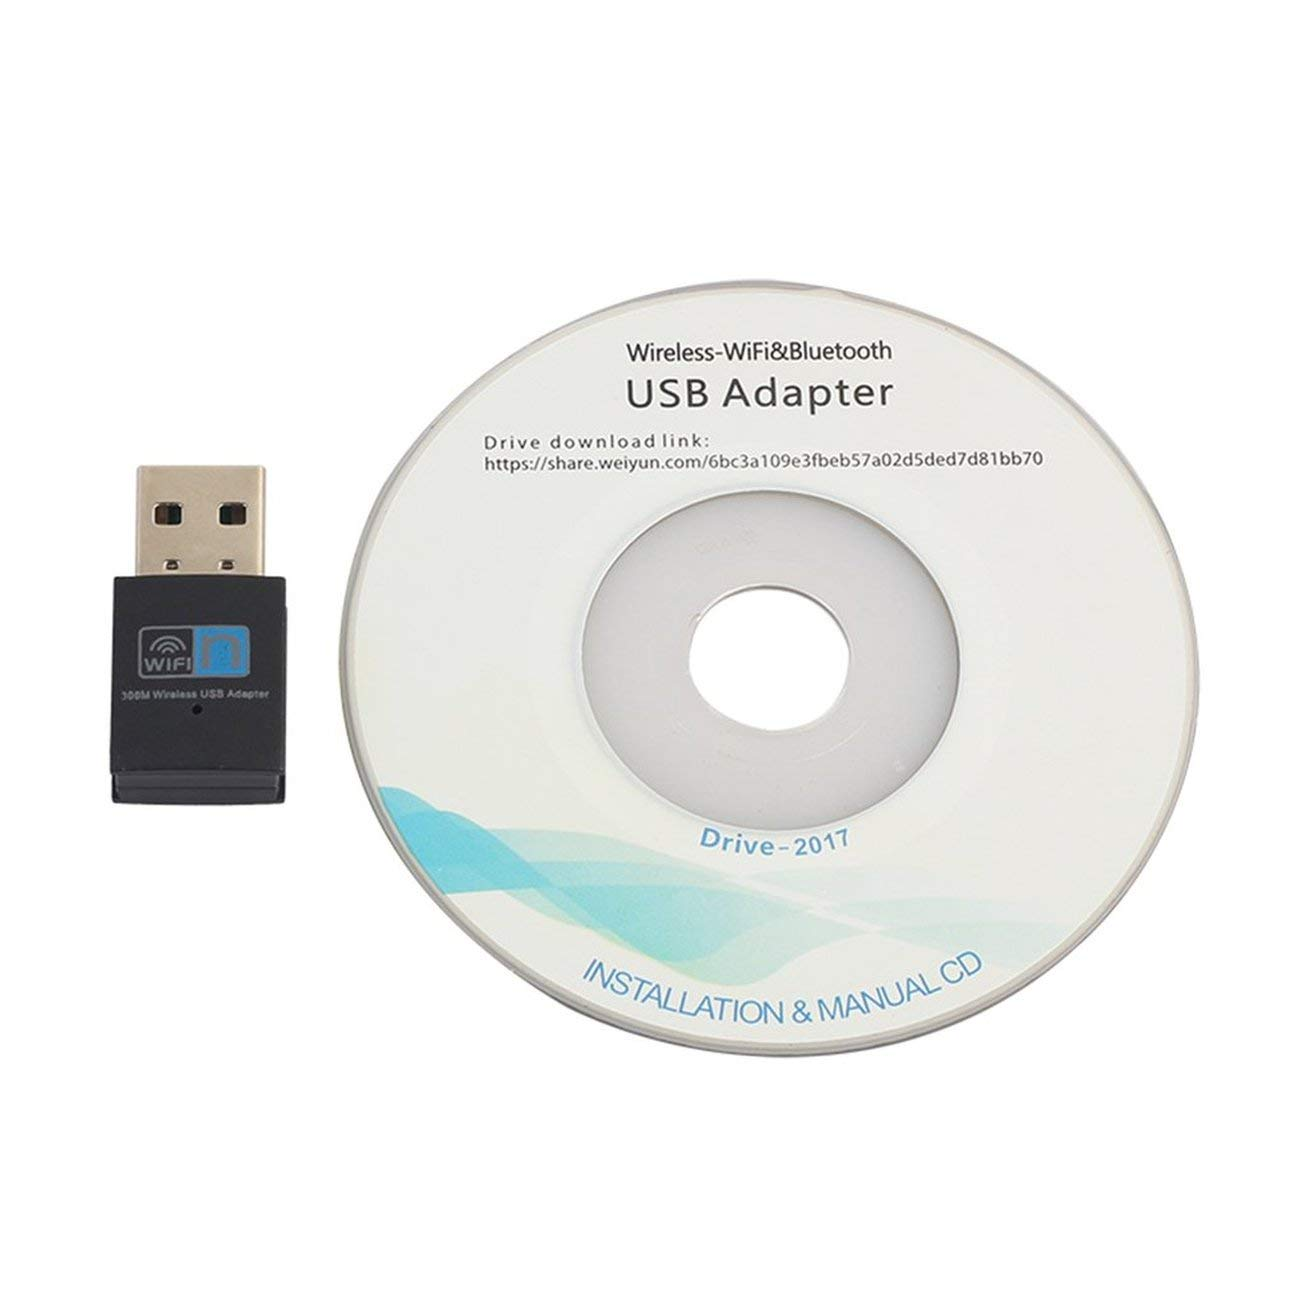 Liobaba 300Mbps Mini USB2.0 WiFi Adapter WiFi Dongle Wireless LAN Network Card 802.11n/g/b WiFi LAN Adapter for Laptop PC